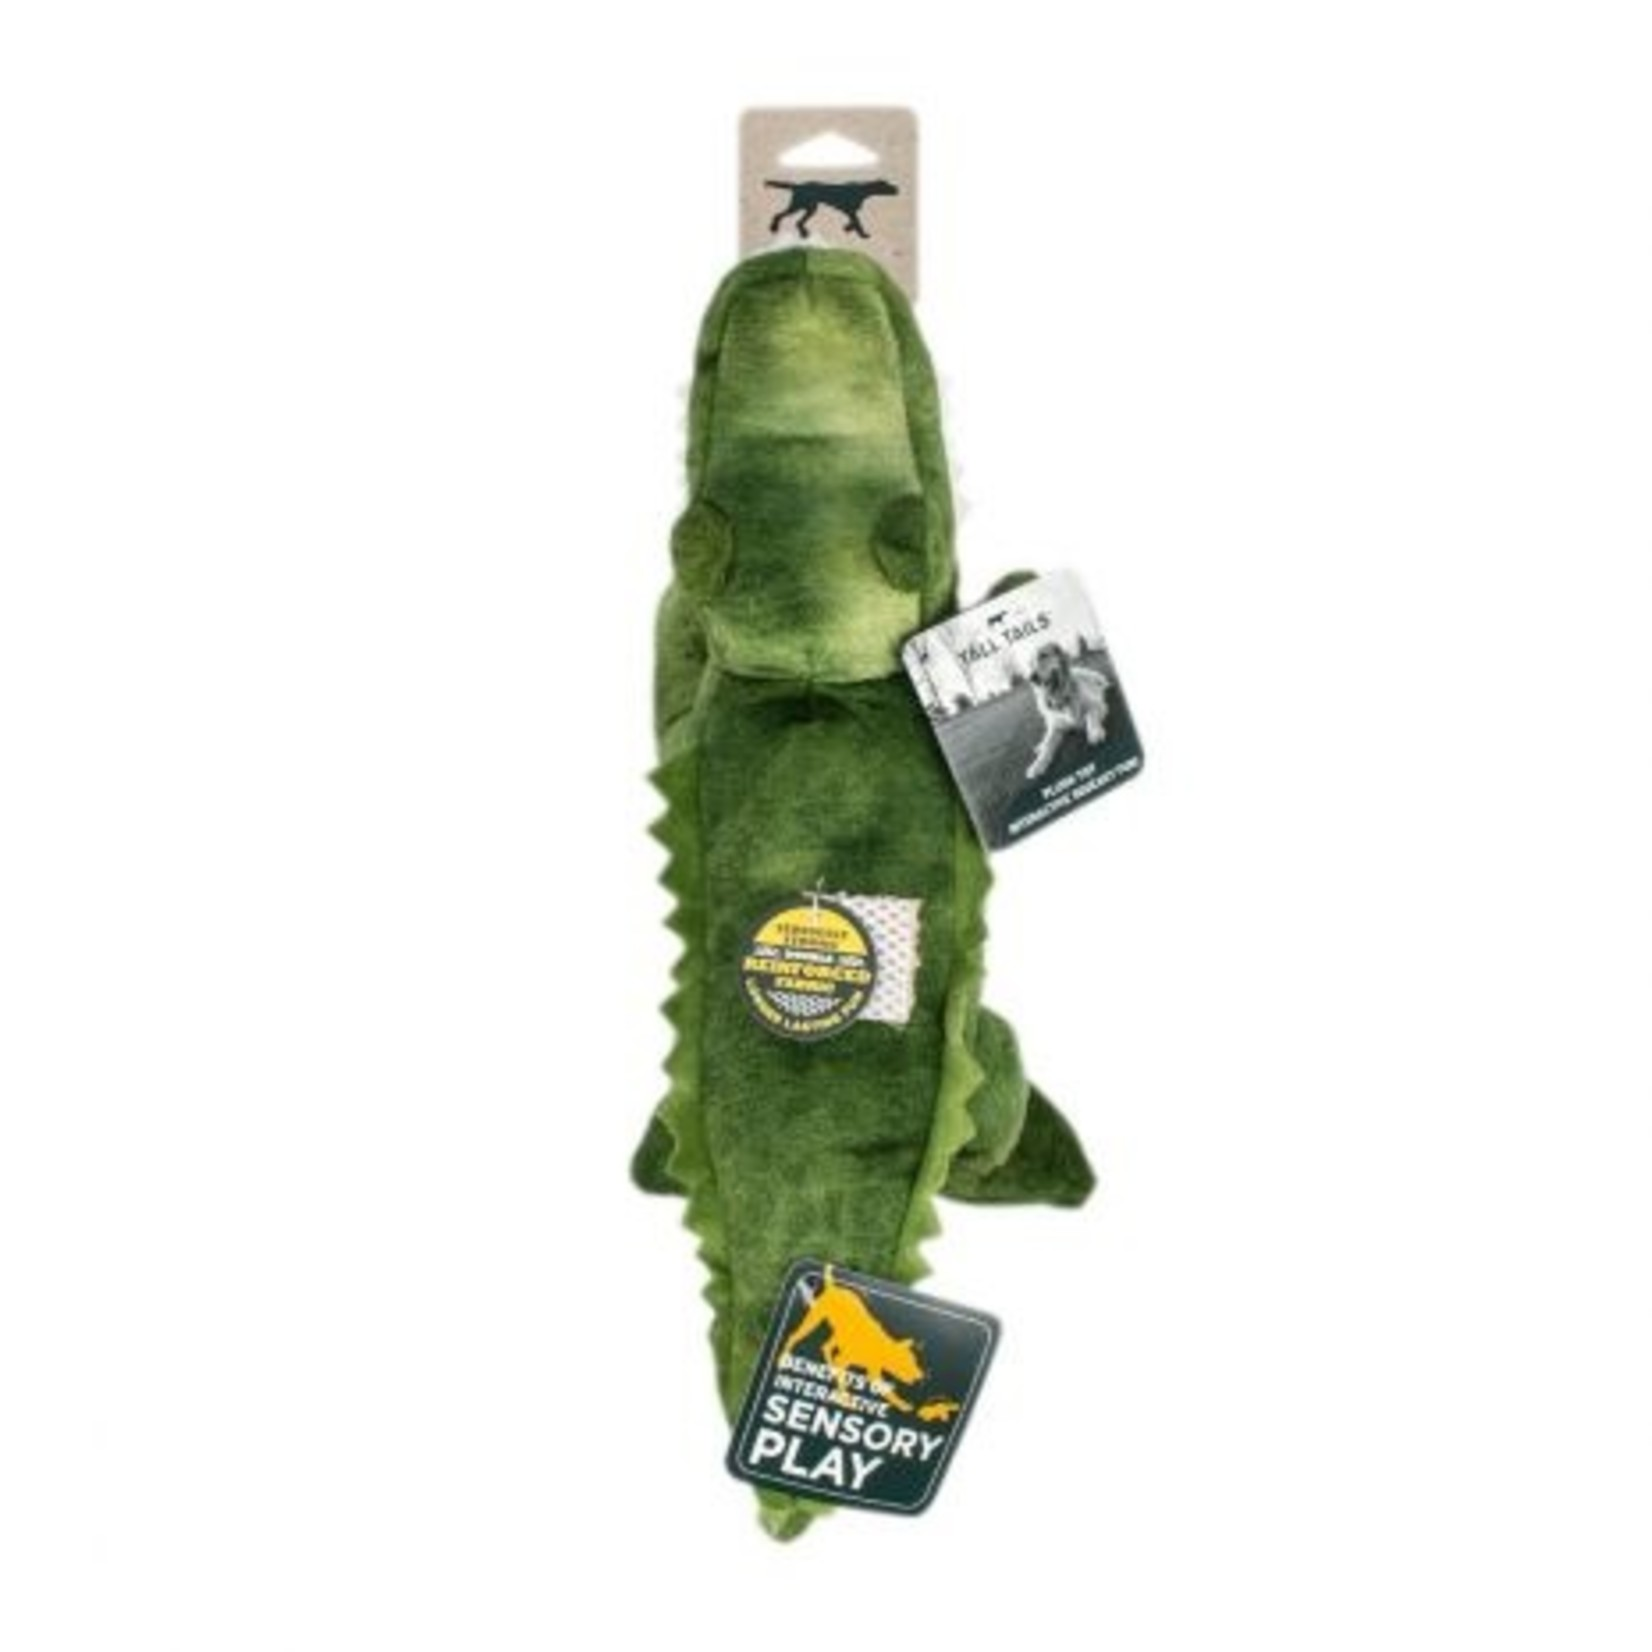 Tall Tails TALL TAILS Crunch Alligator Dog Toy